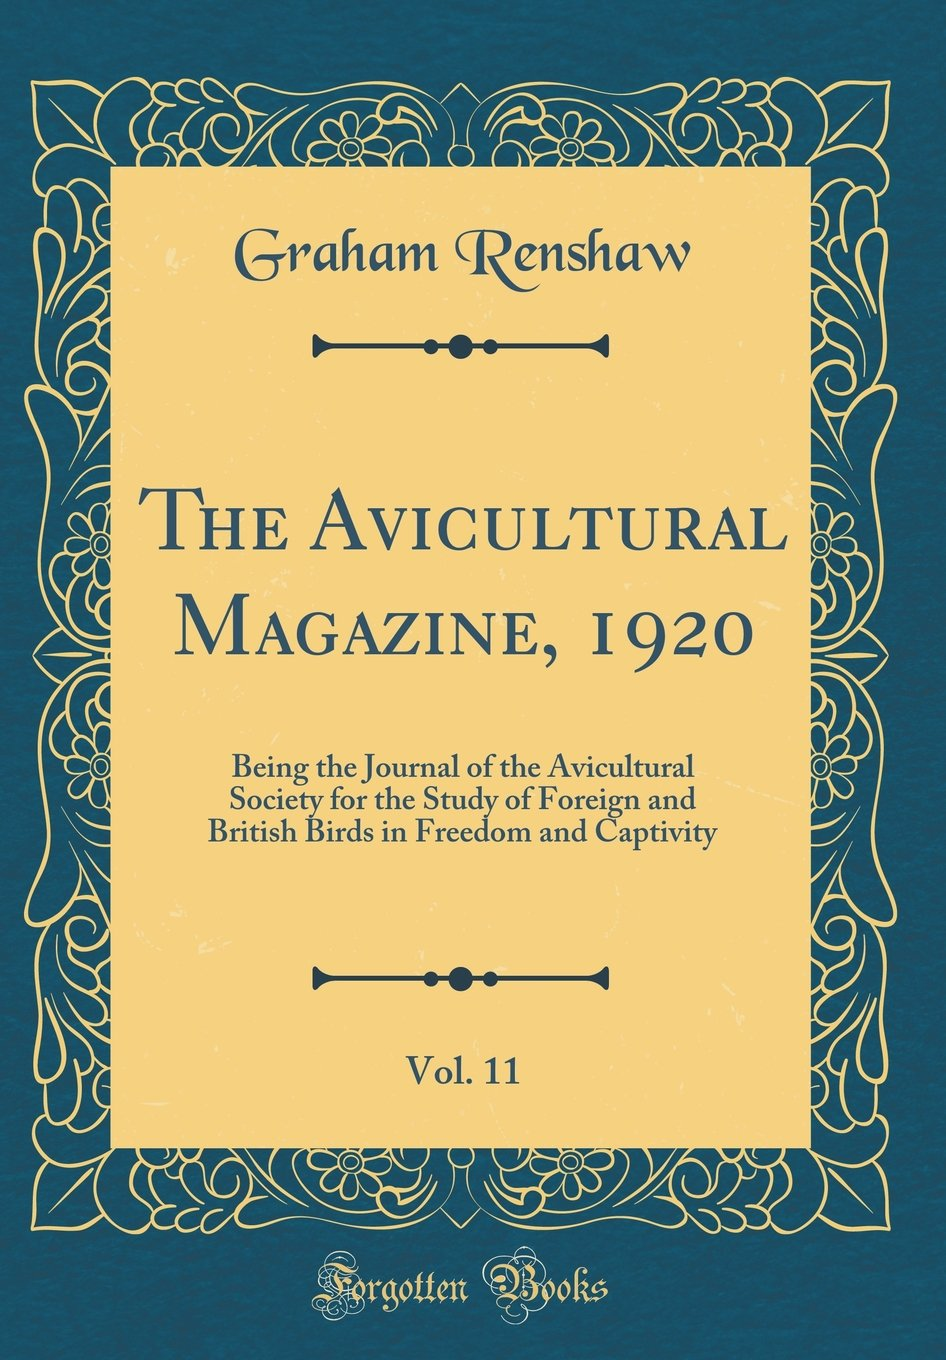 Download The Avicultural Magazine, 1920, Vol. 11: Being the Journal of the Avicultural Society for the Study of Foreign and British Birds in Freedom and Captivity (Classic Reprint) PDF